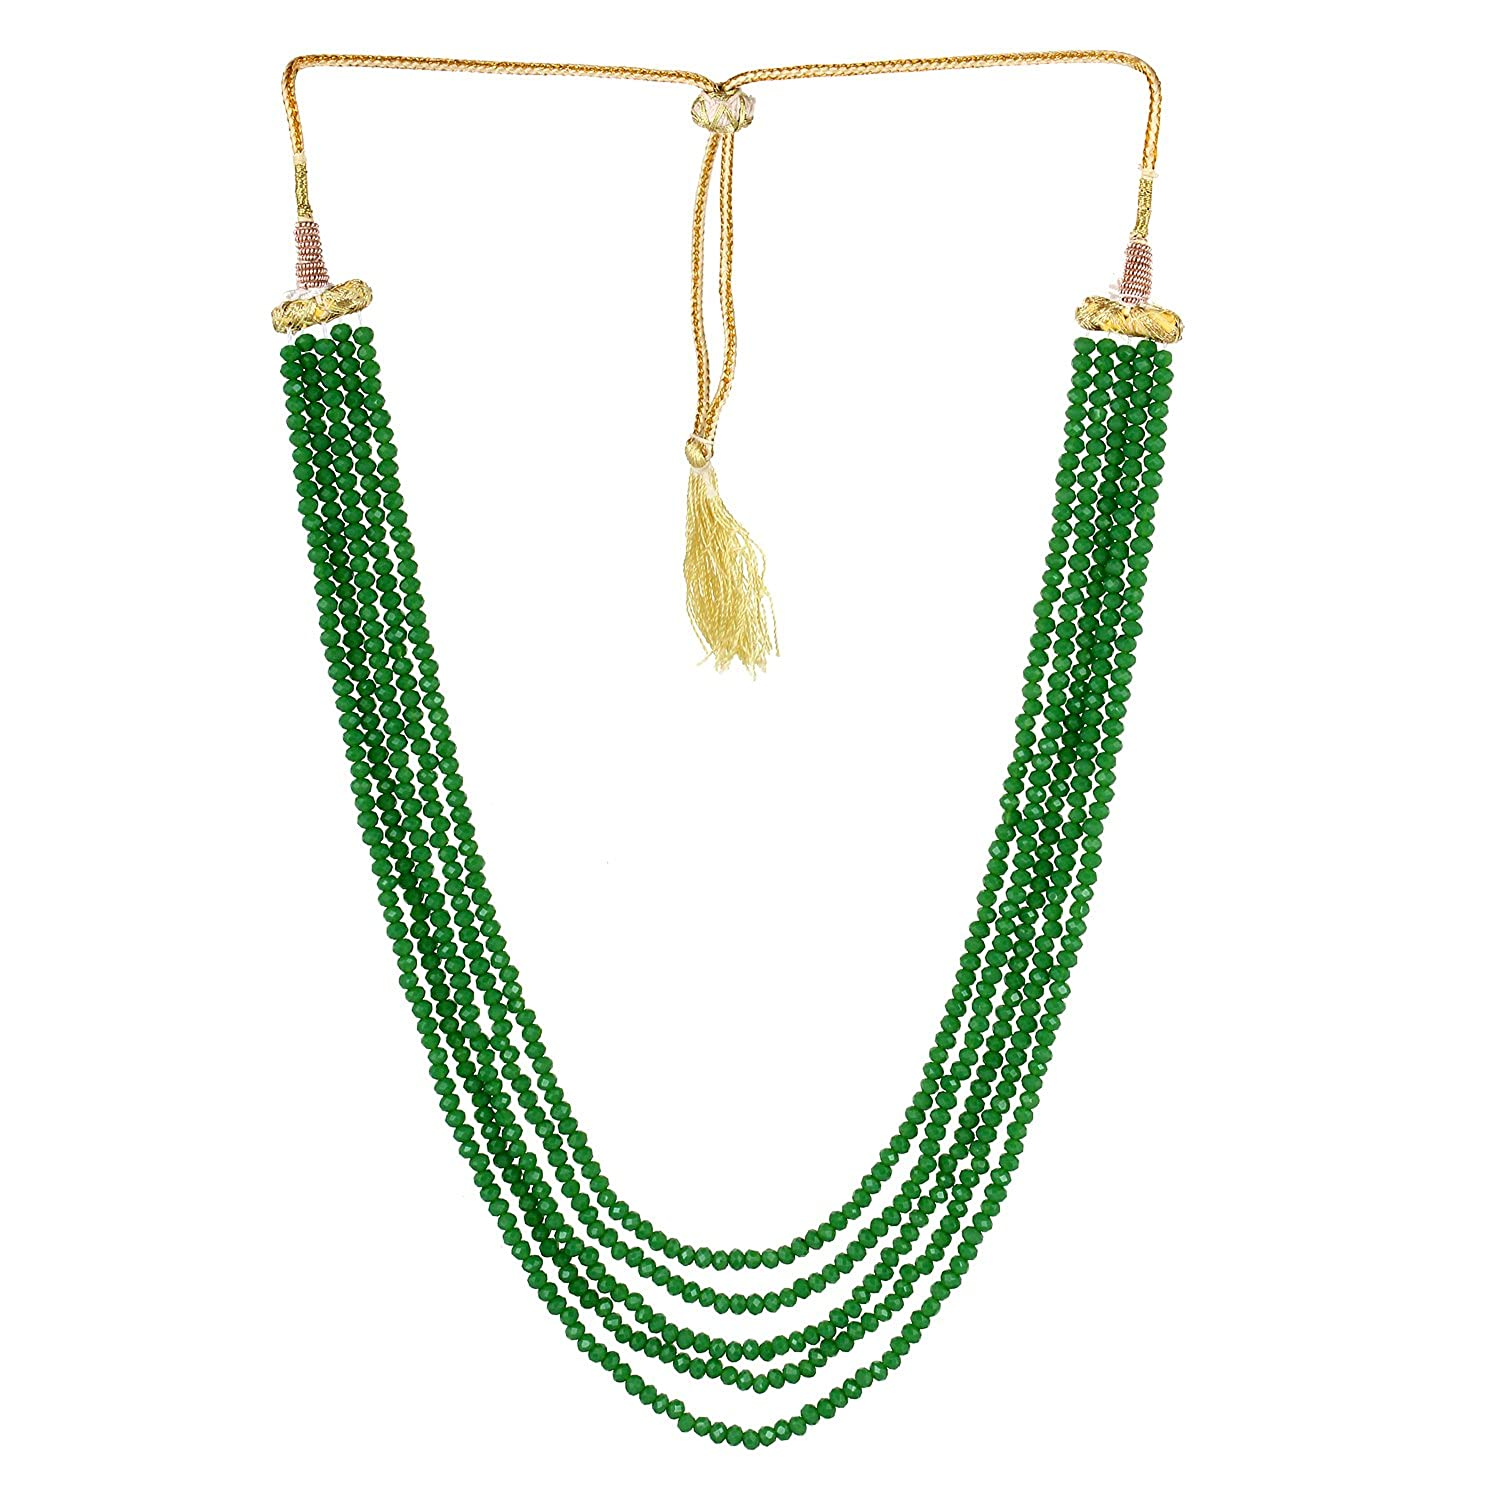 hover beads necklace emerald necklaces purity by arts estilo green view velvetcase zoom chains mani to in